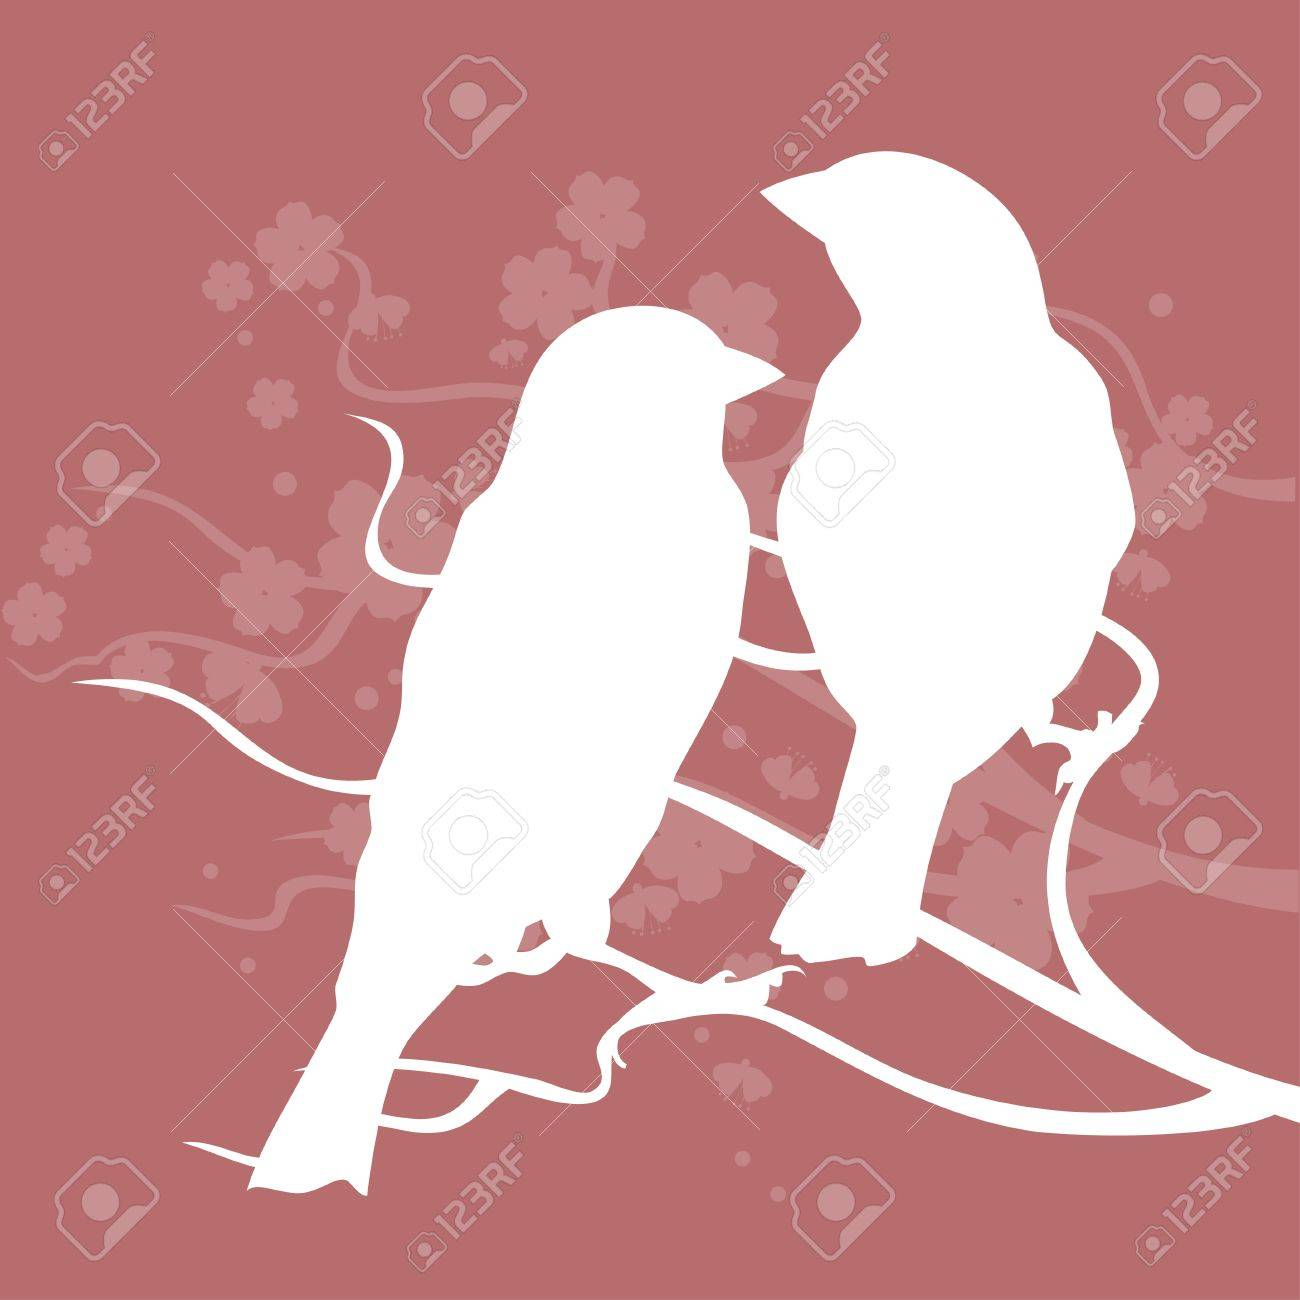 Silhouettes of birds sitting together and symbolizes love royalty silhouettes of birds sitting together and symbolizes love stock vector 36626509 biocorpaavc